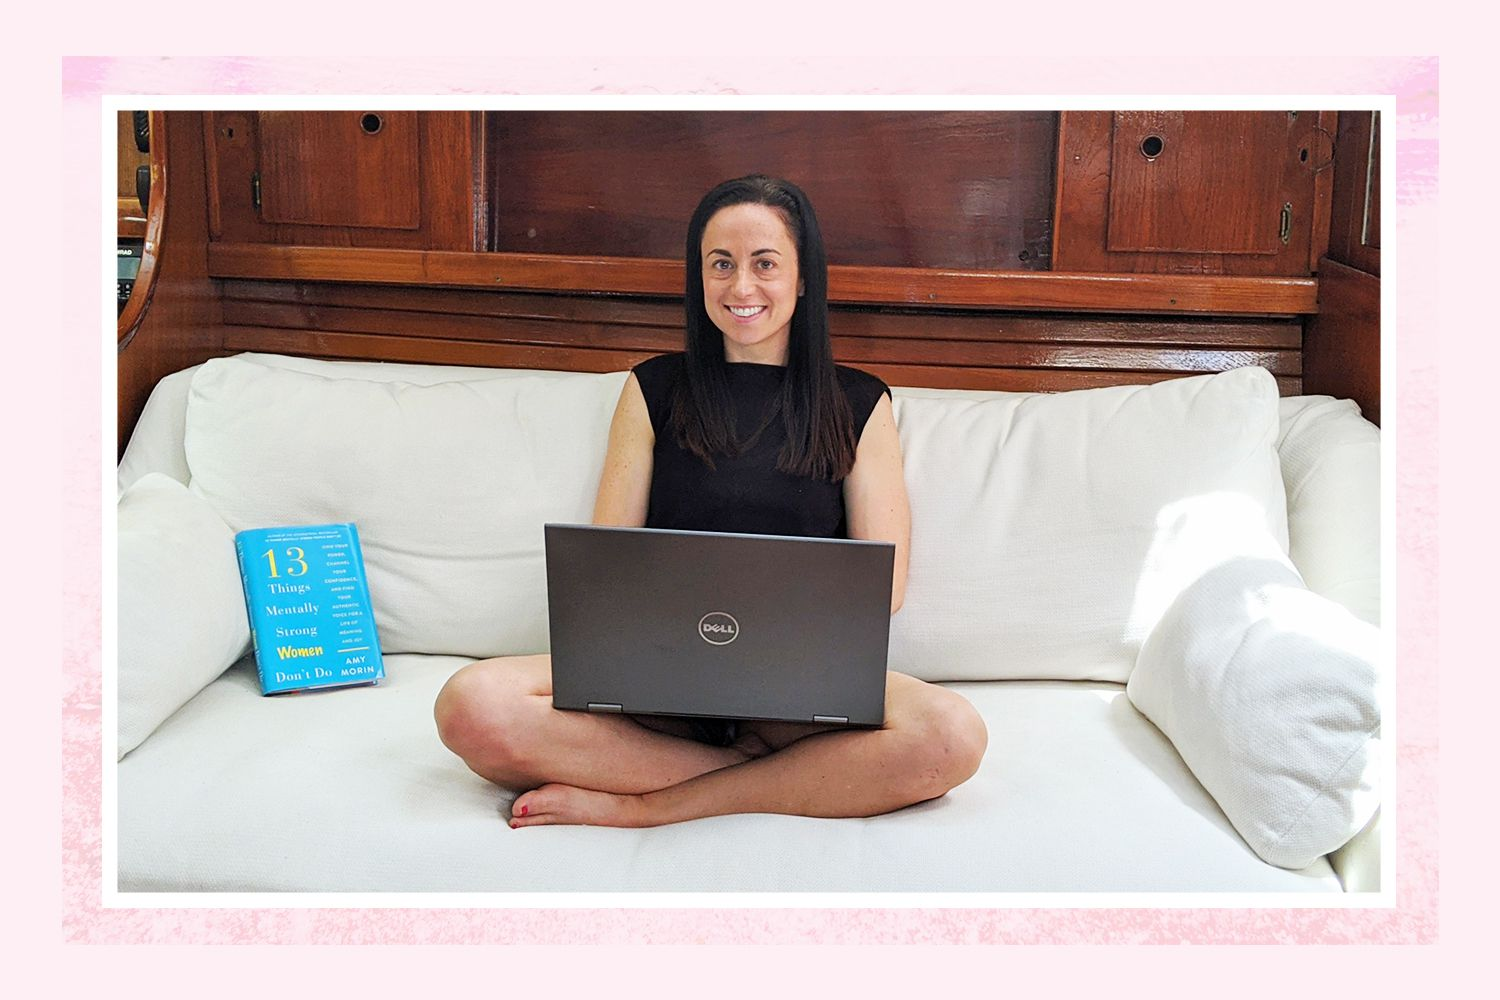 Amy Morin, Editor-in-Chief of Verywell Mind and author of